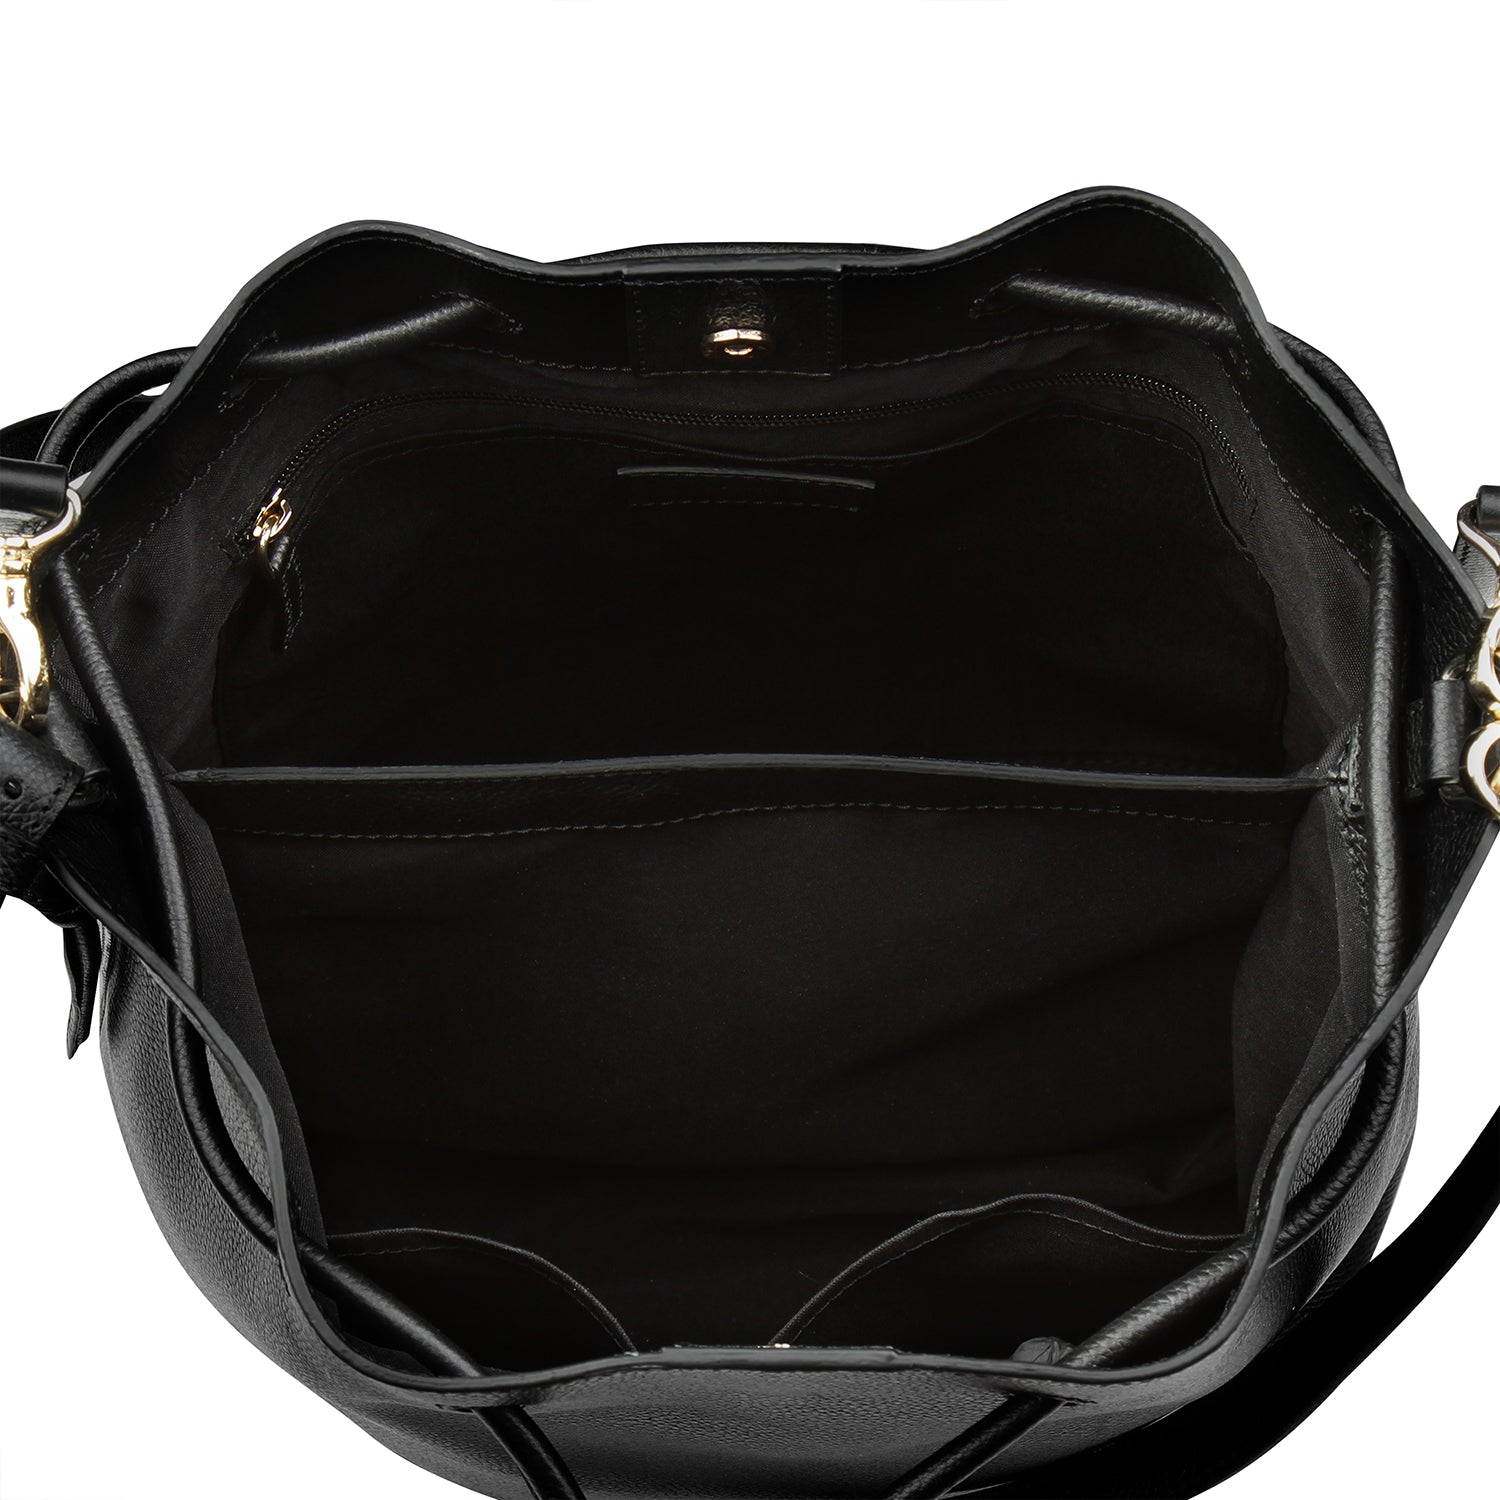 A convertible laptop size womens black leather backpack, interior image.